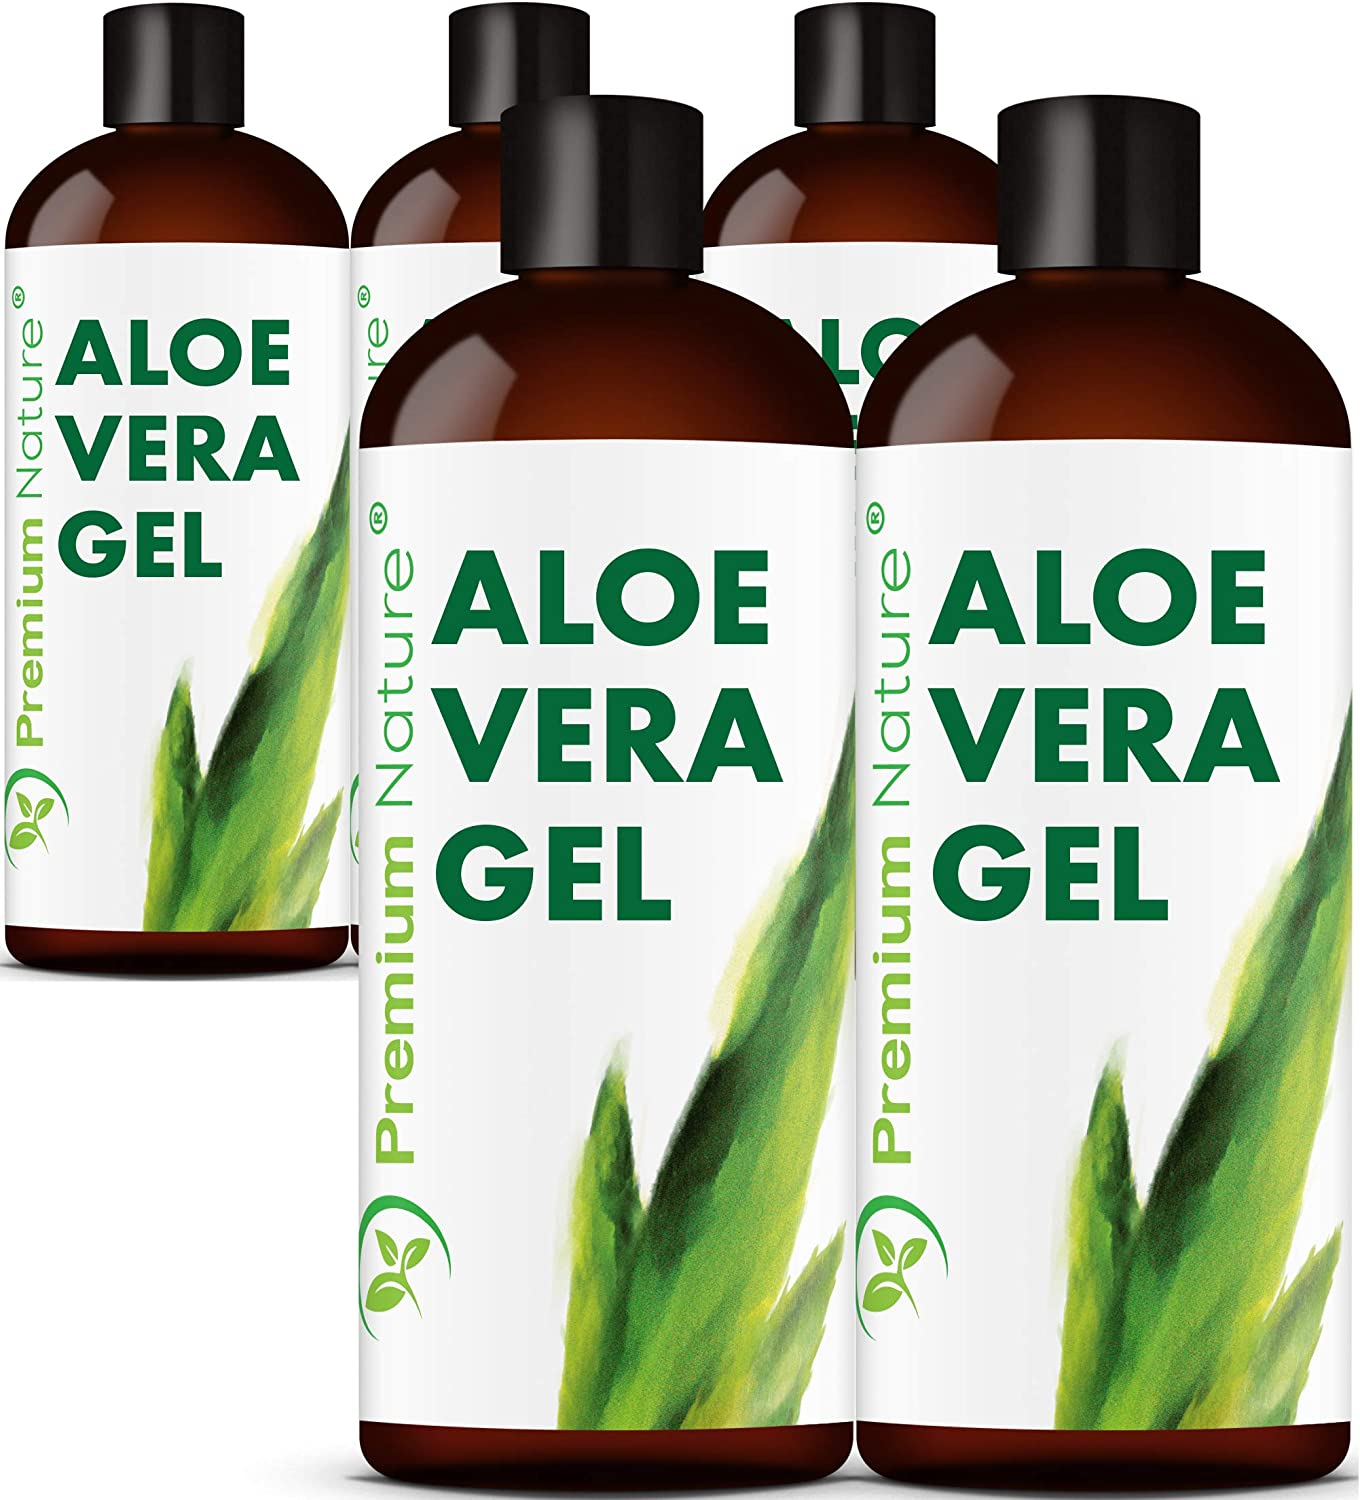 Pure Aloe Vera Gel Lotion- For Face & Dry Skin t Cold Sore Scar After Bug Bite Sunburn Relief Rash Razor Bump DIY Body Lotion Skincare Moisturizer Packaging May Vary5pk